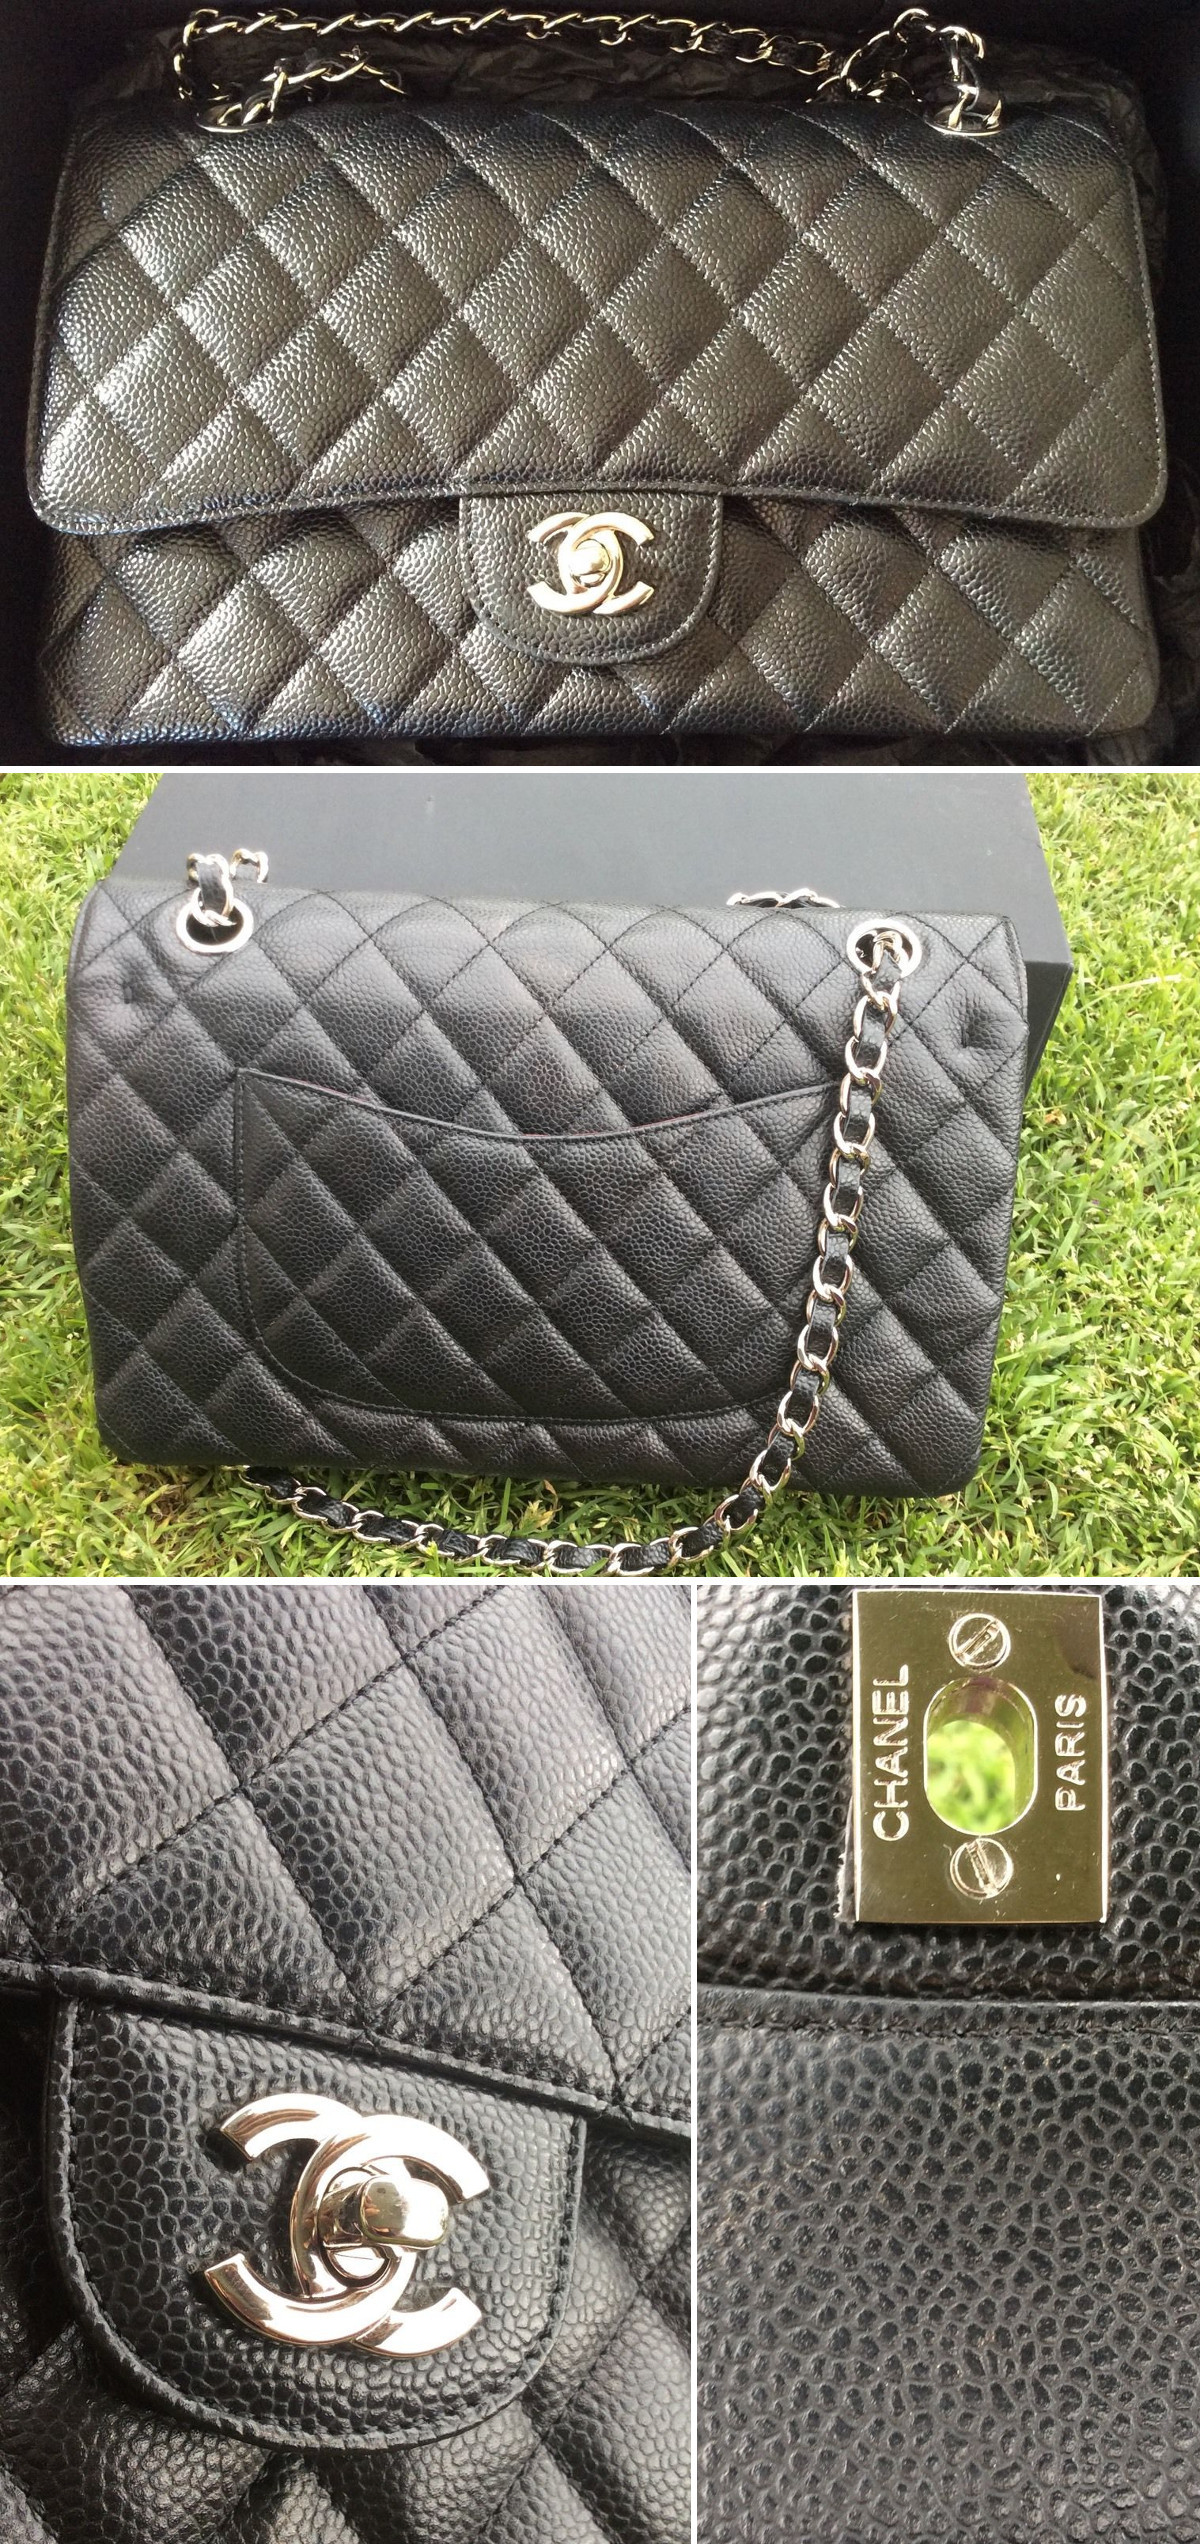 chanel medium double flap bag super fake superfake backplate